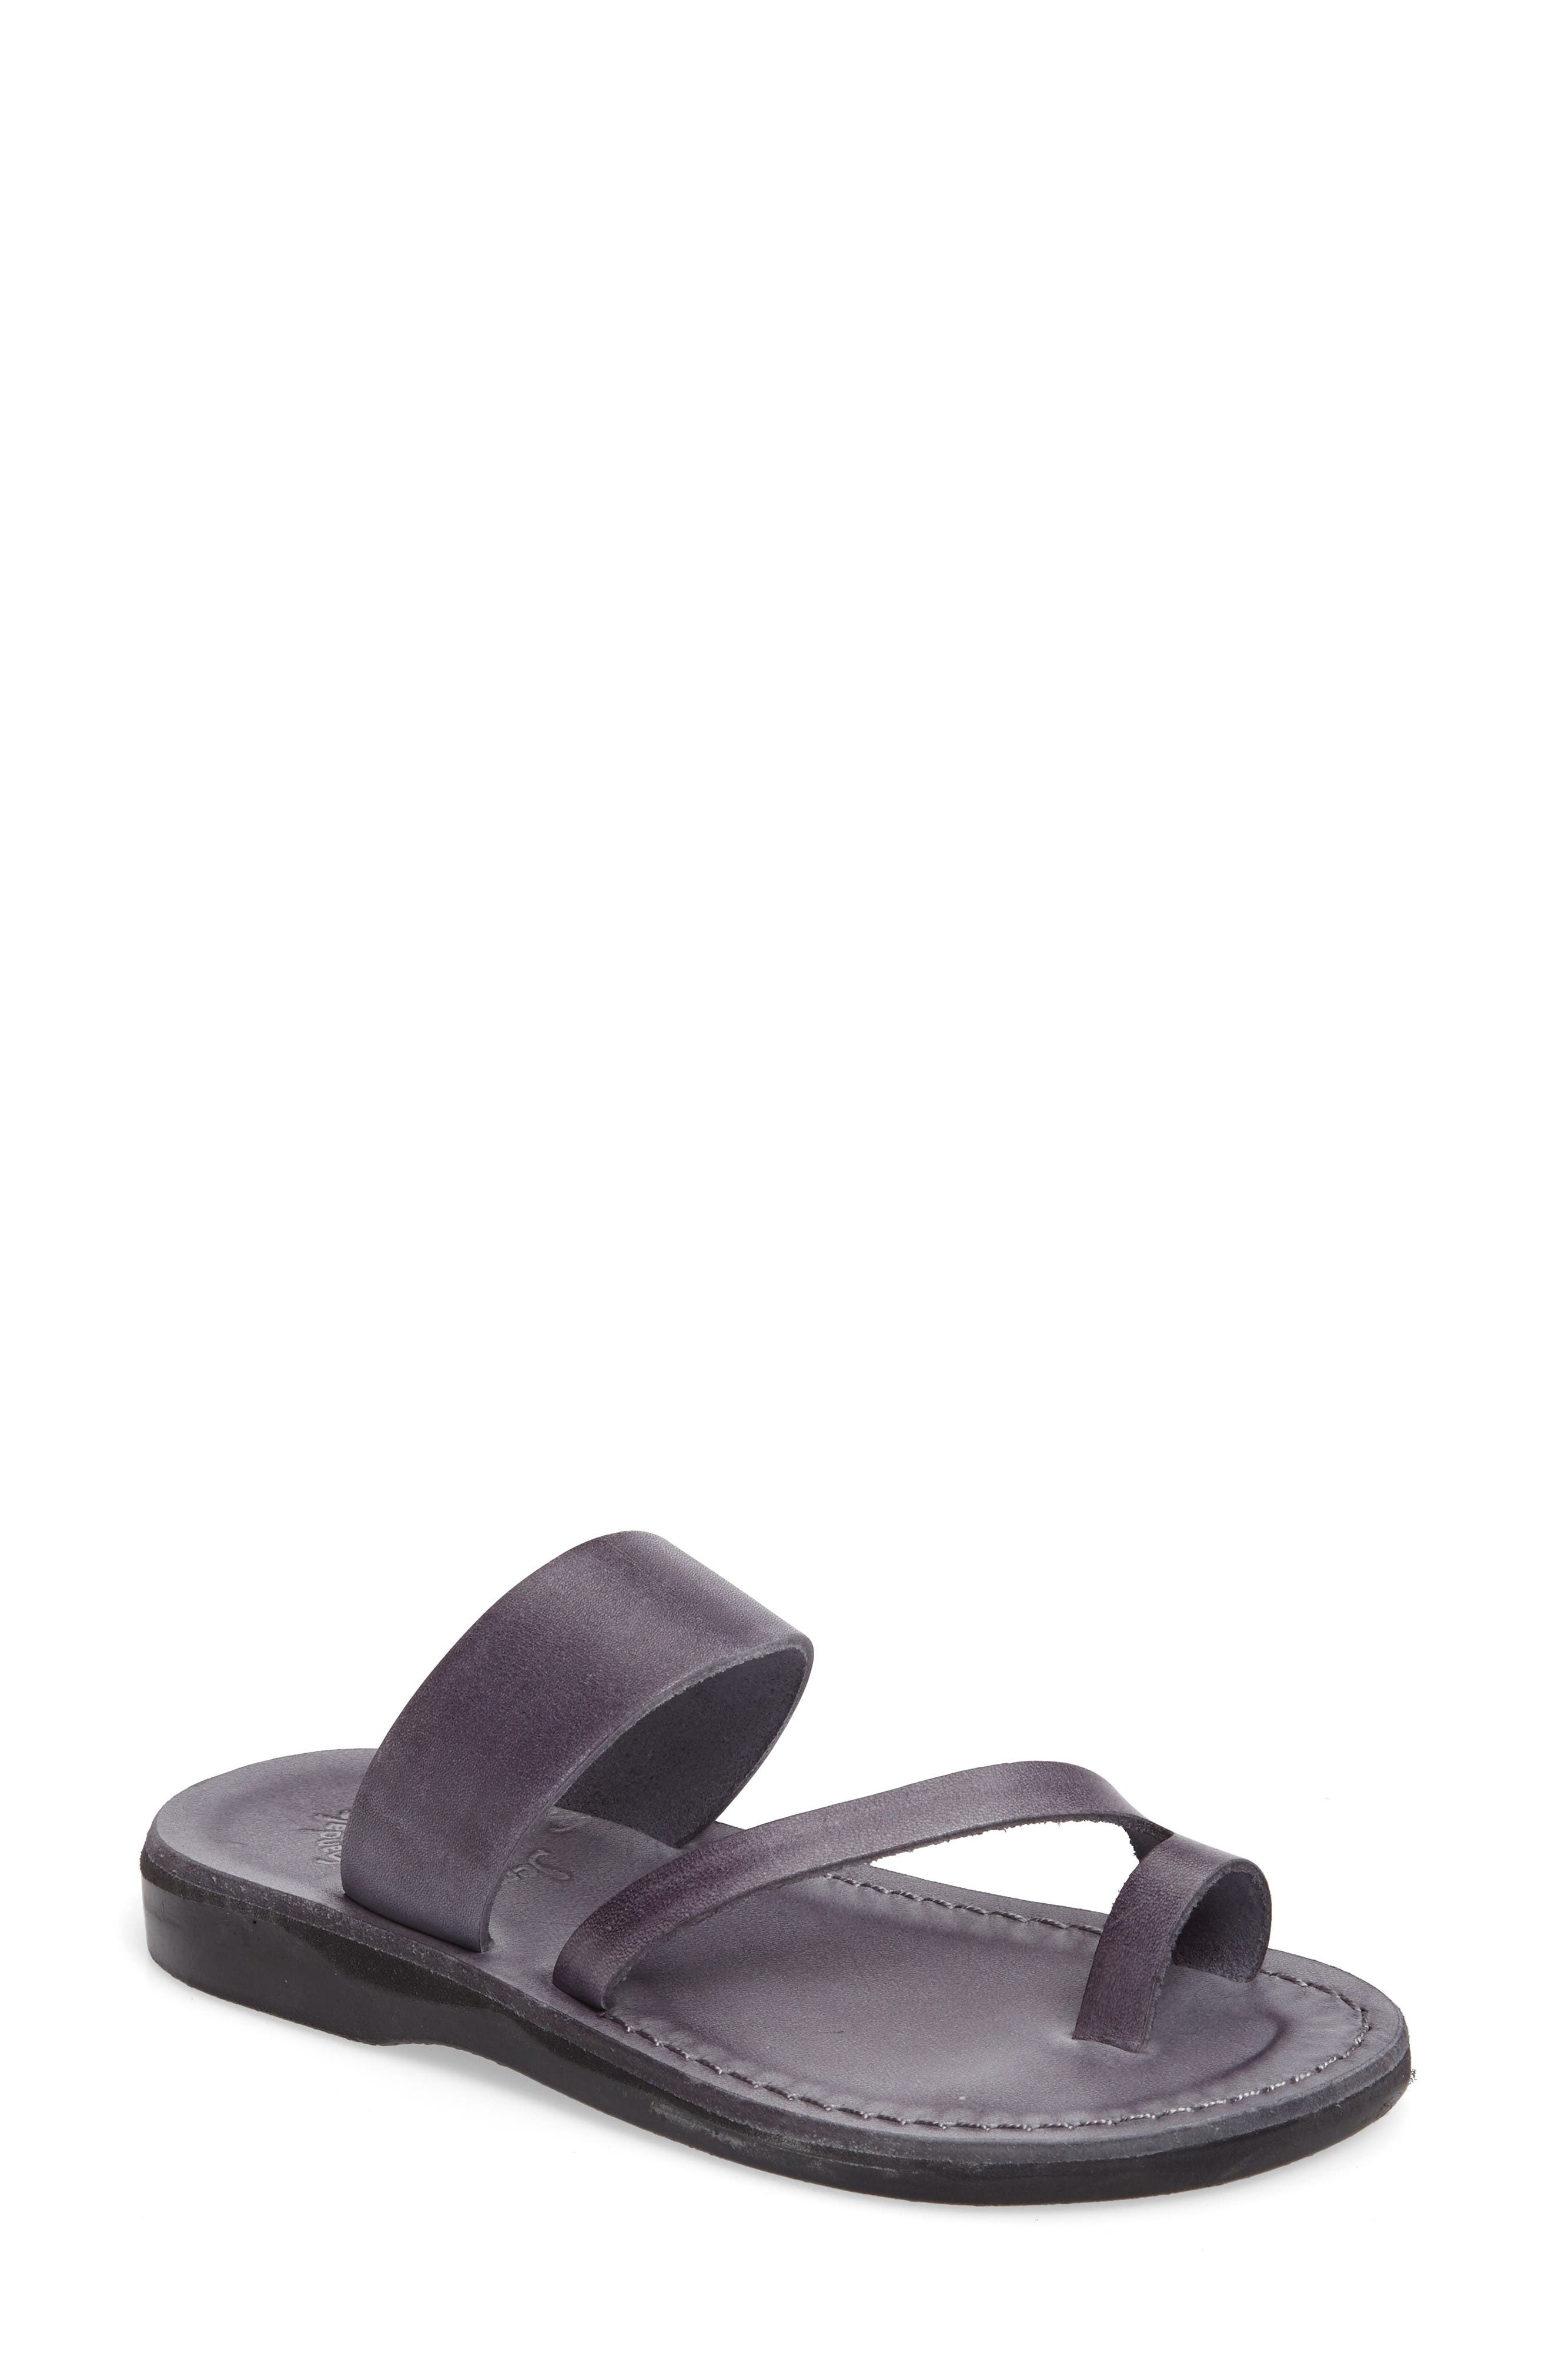 'Zohar' Leather Sandal,                         Main,                         color, Grey Leather